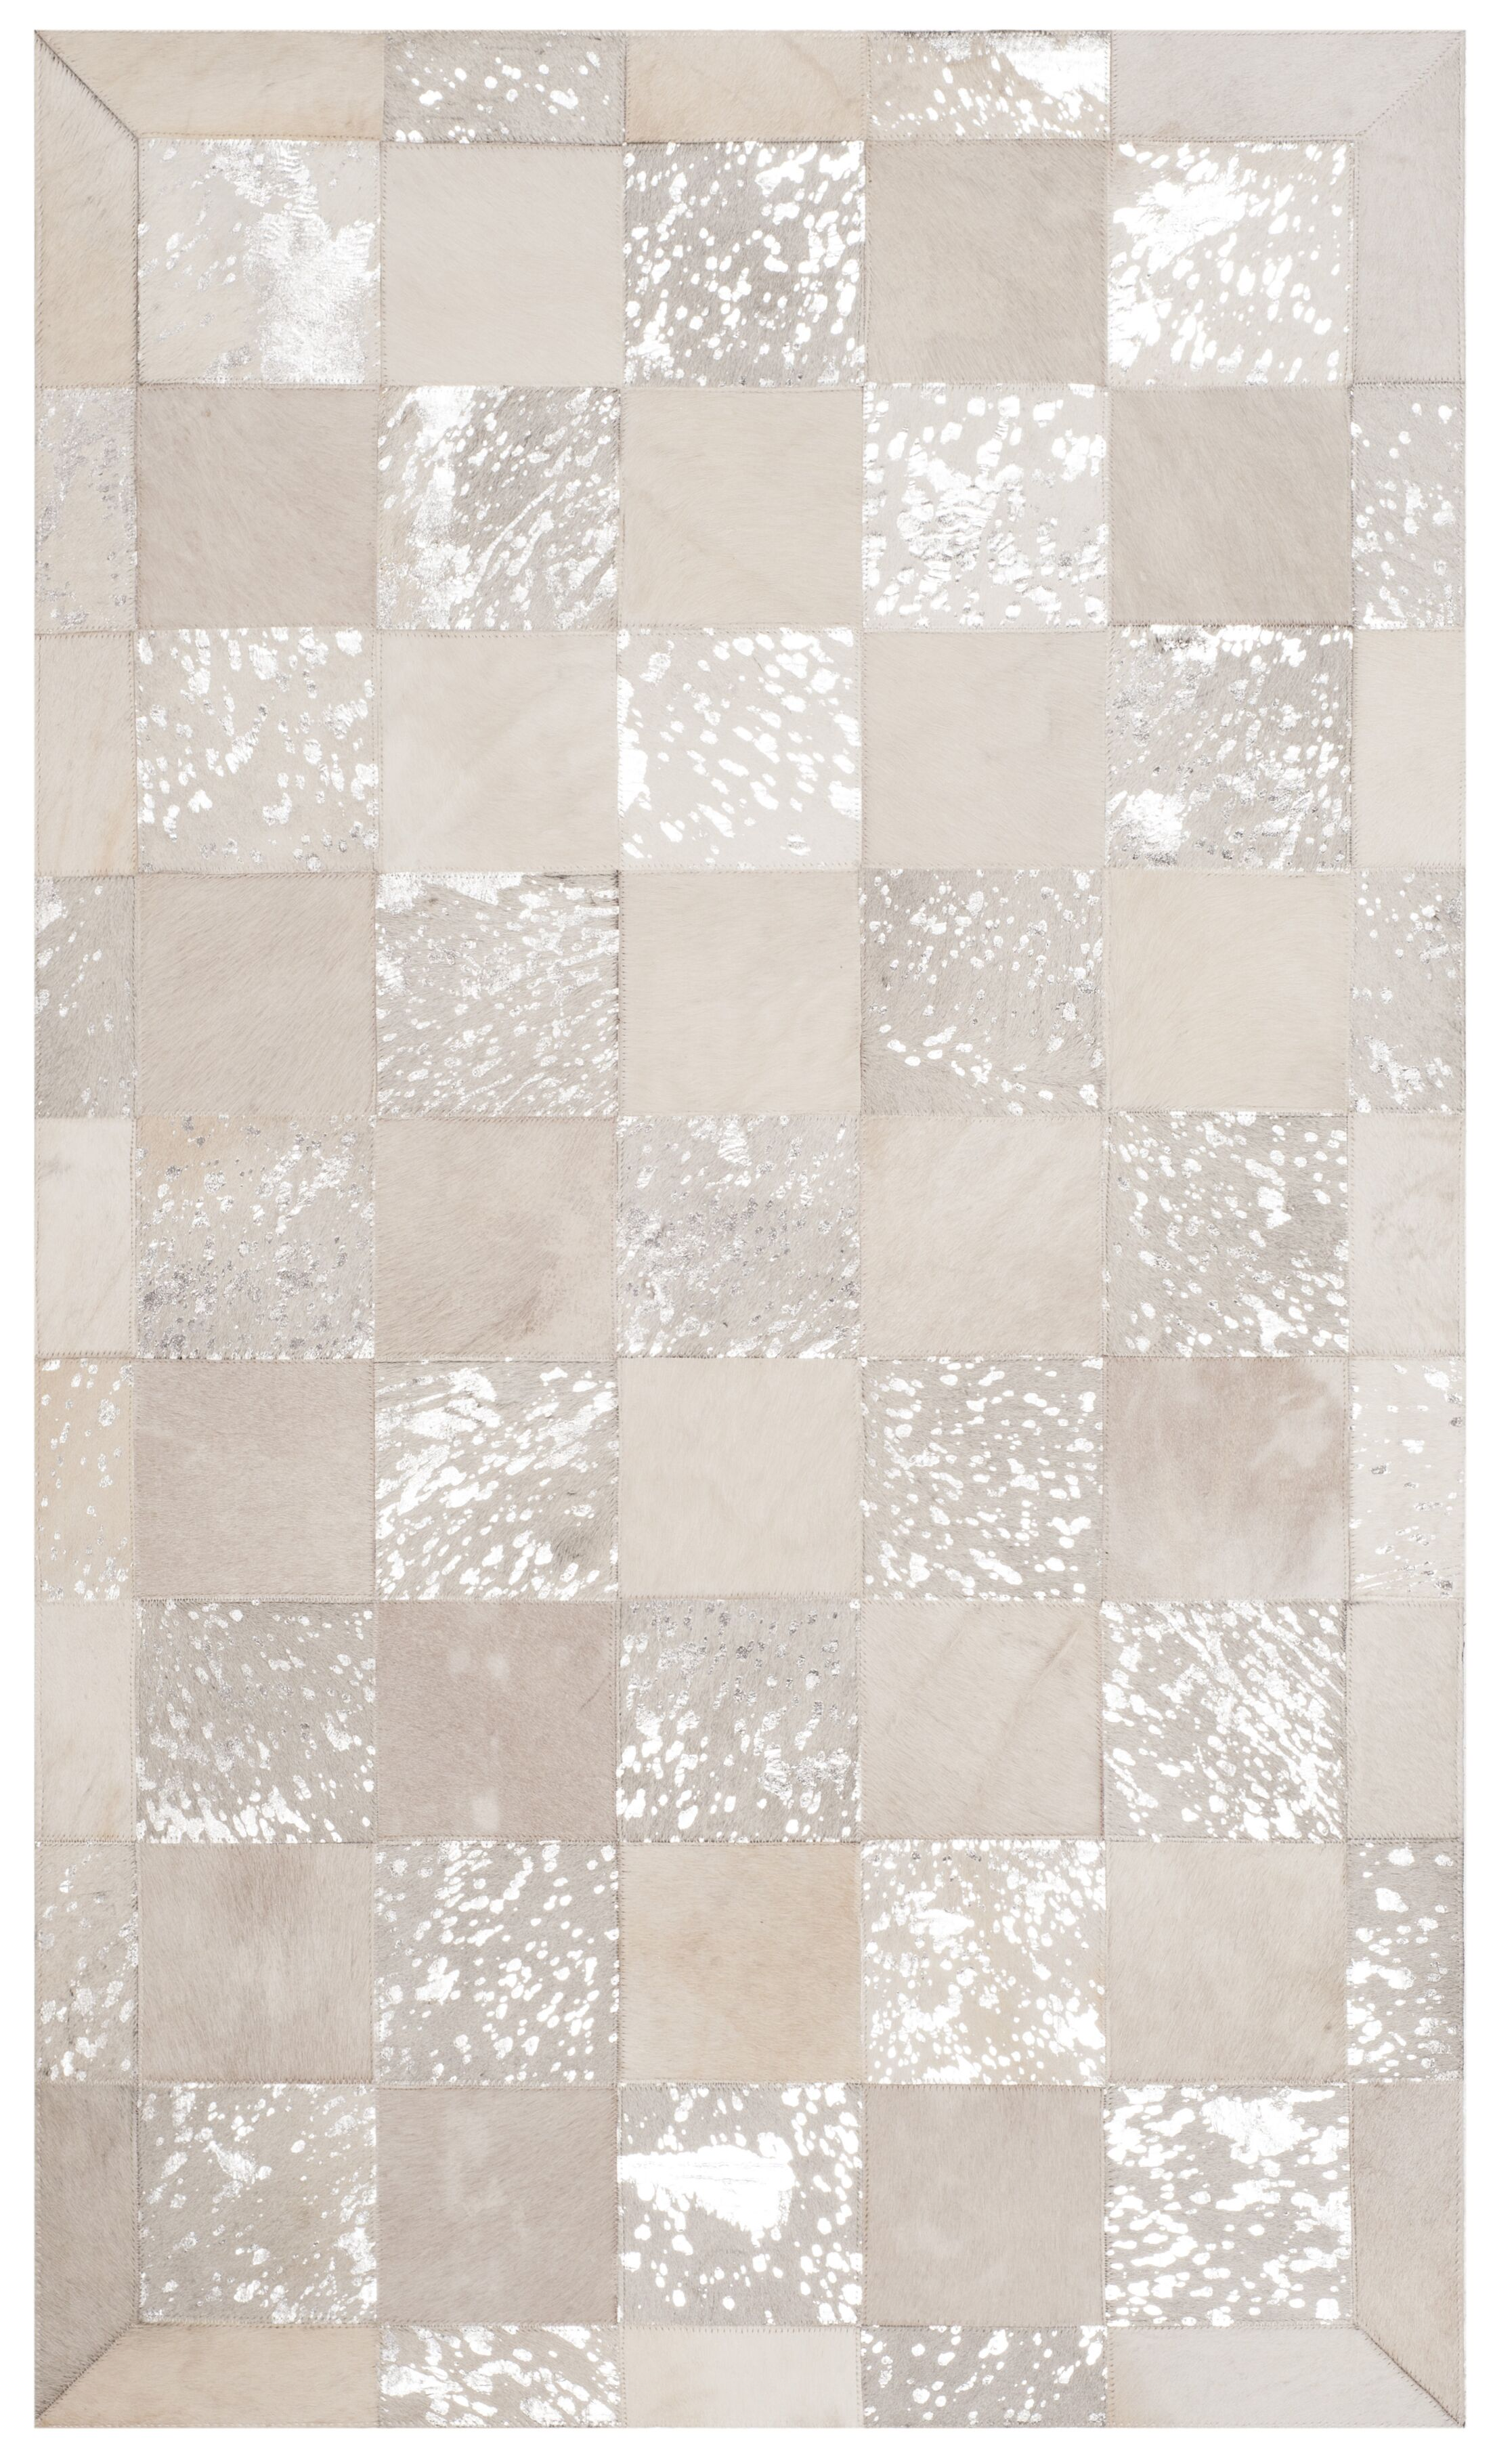 Bremner Hand-Woven Ivory Area Rug Rug Size: Rectangle 8' x 10'